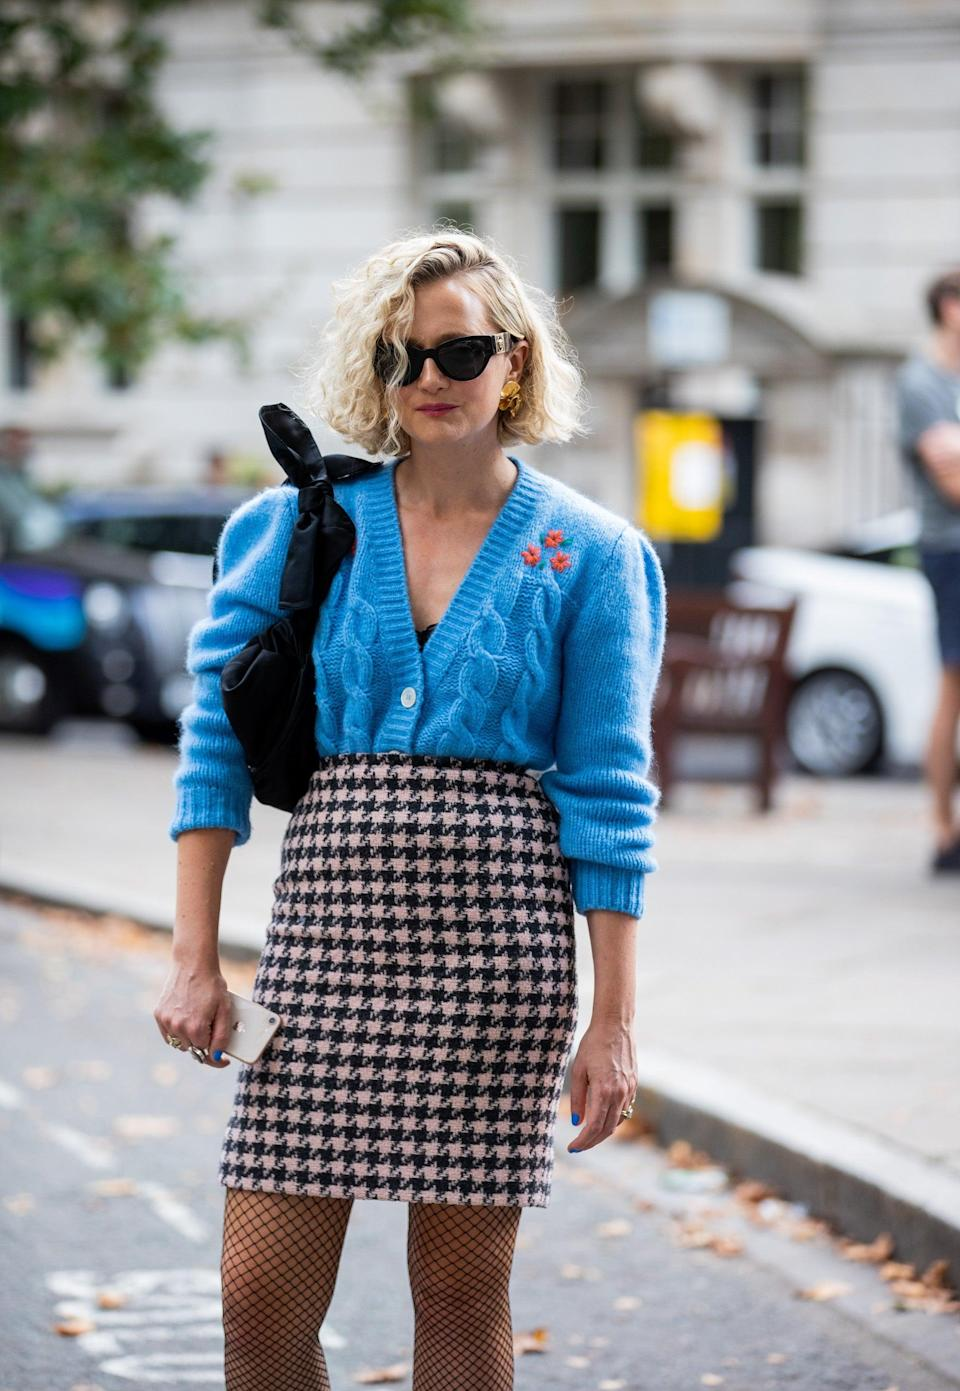 """This cardigan and houndstooth skirt combo is one we're bookmarking for our <a href=""""https://www.refinery29.com/en-gb/autumn-transitional-office-wear-clothing"""" rel=""""nofollow noopener"""" target=""""_blank"""" data-ylk=""""slk:back-to-work wardrobe"""" class=""""link rapid-noclick-resp"""">back-to-work wardrobe</a>. <span class=""""copyright"""">Photo Courtesy Of Christian Vierig/Getty Images.</span>"""